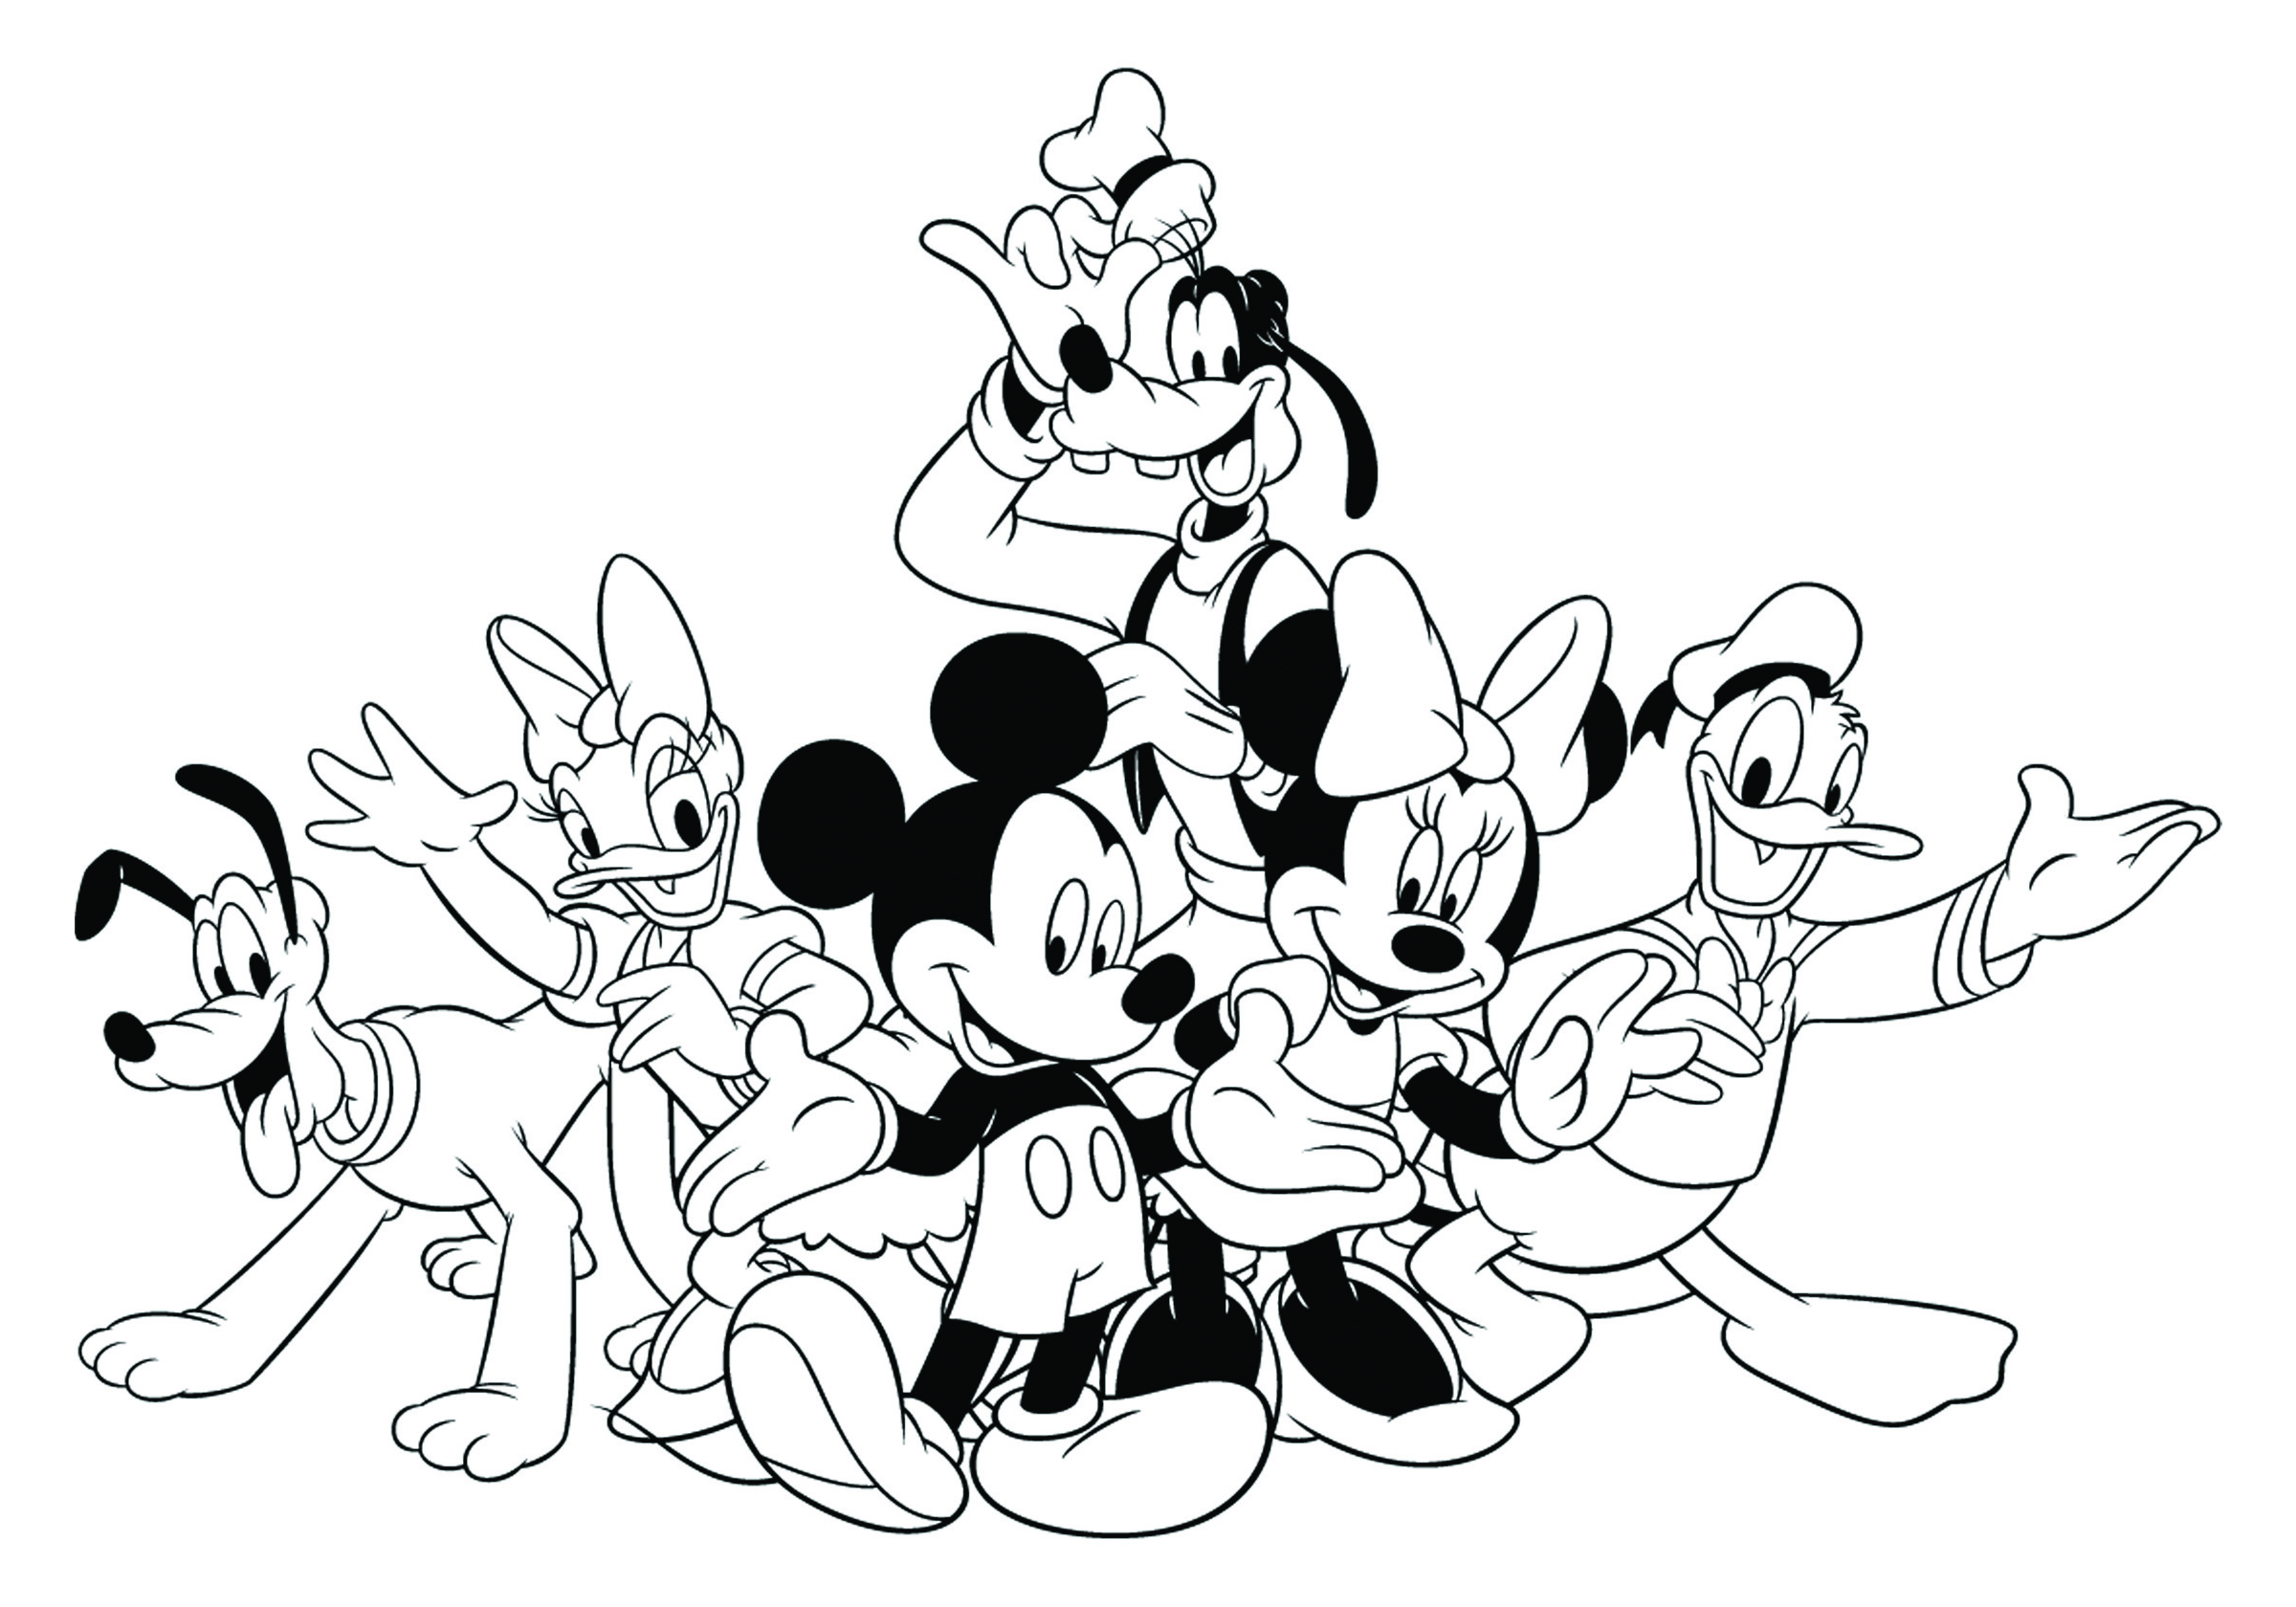 Disney Coloring Pages Mickey Mouse And Friends At Getdrawings